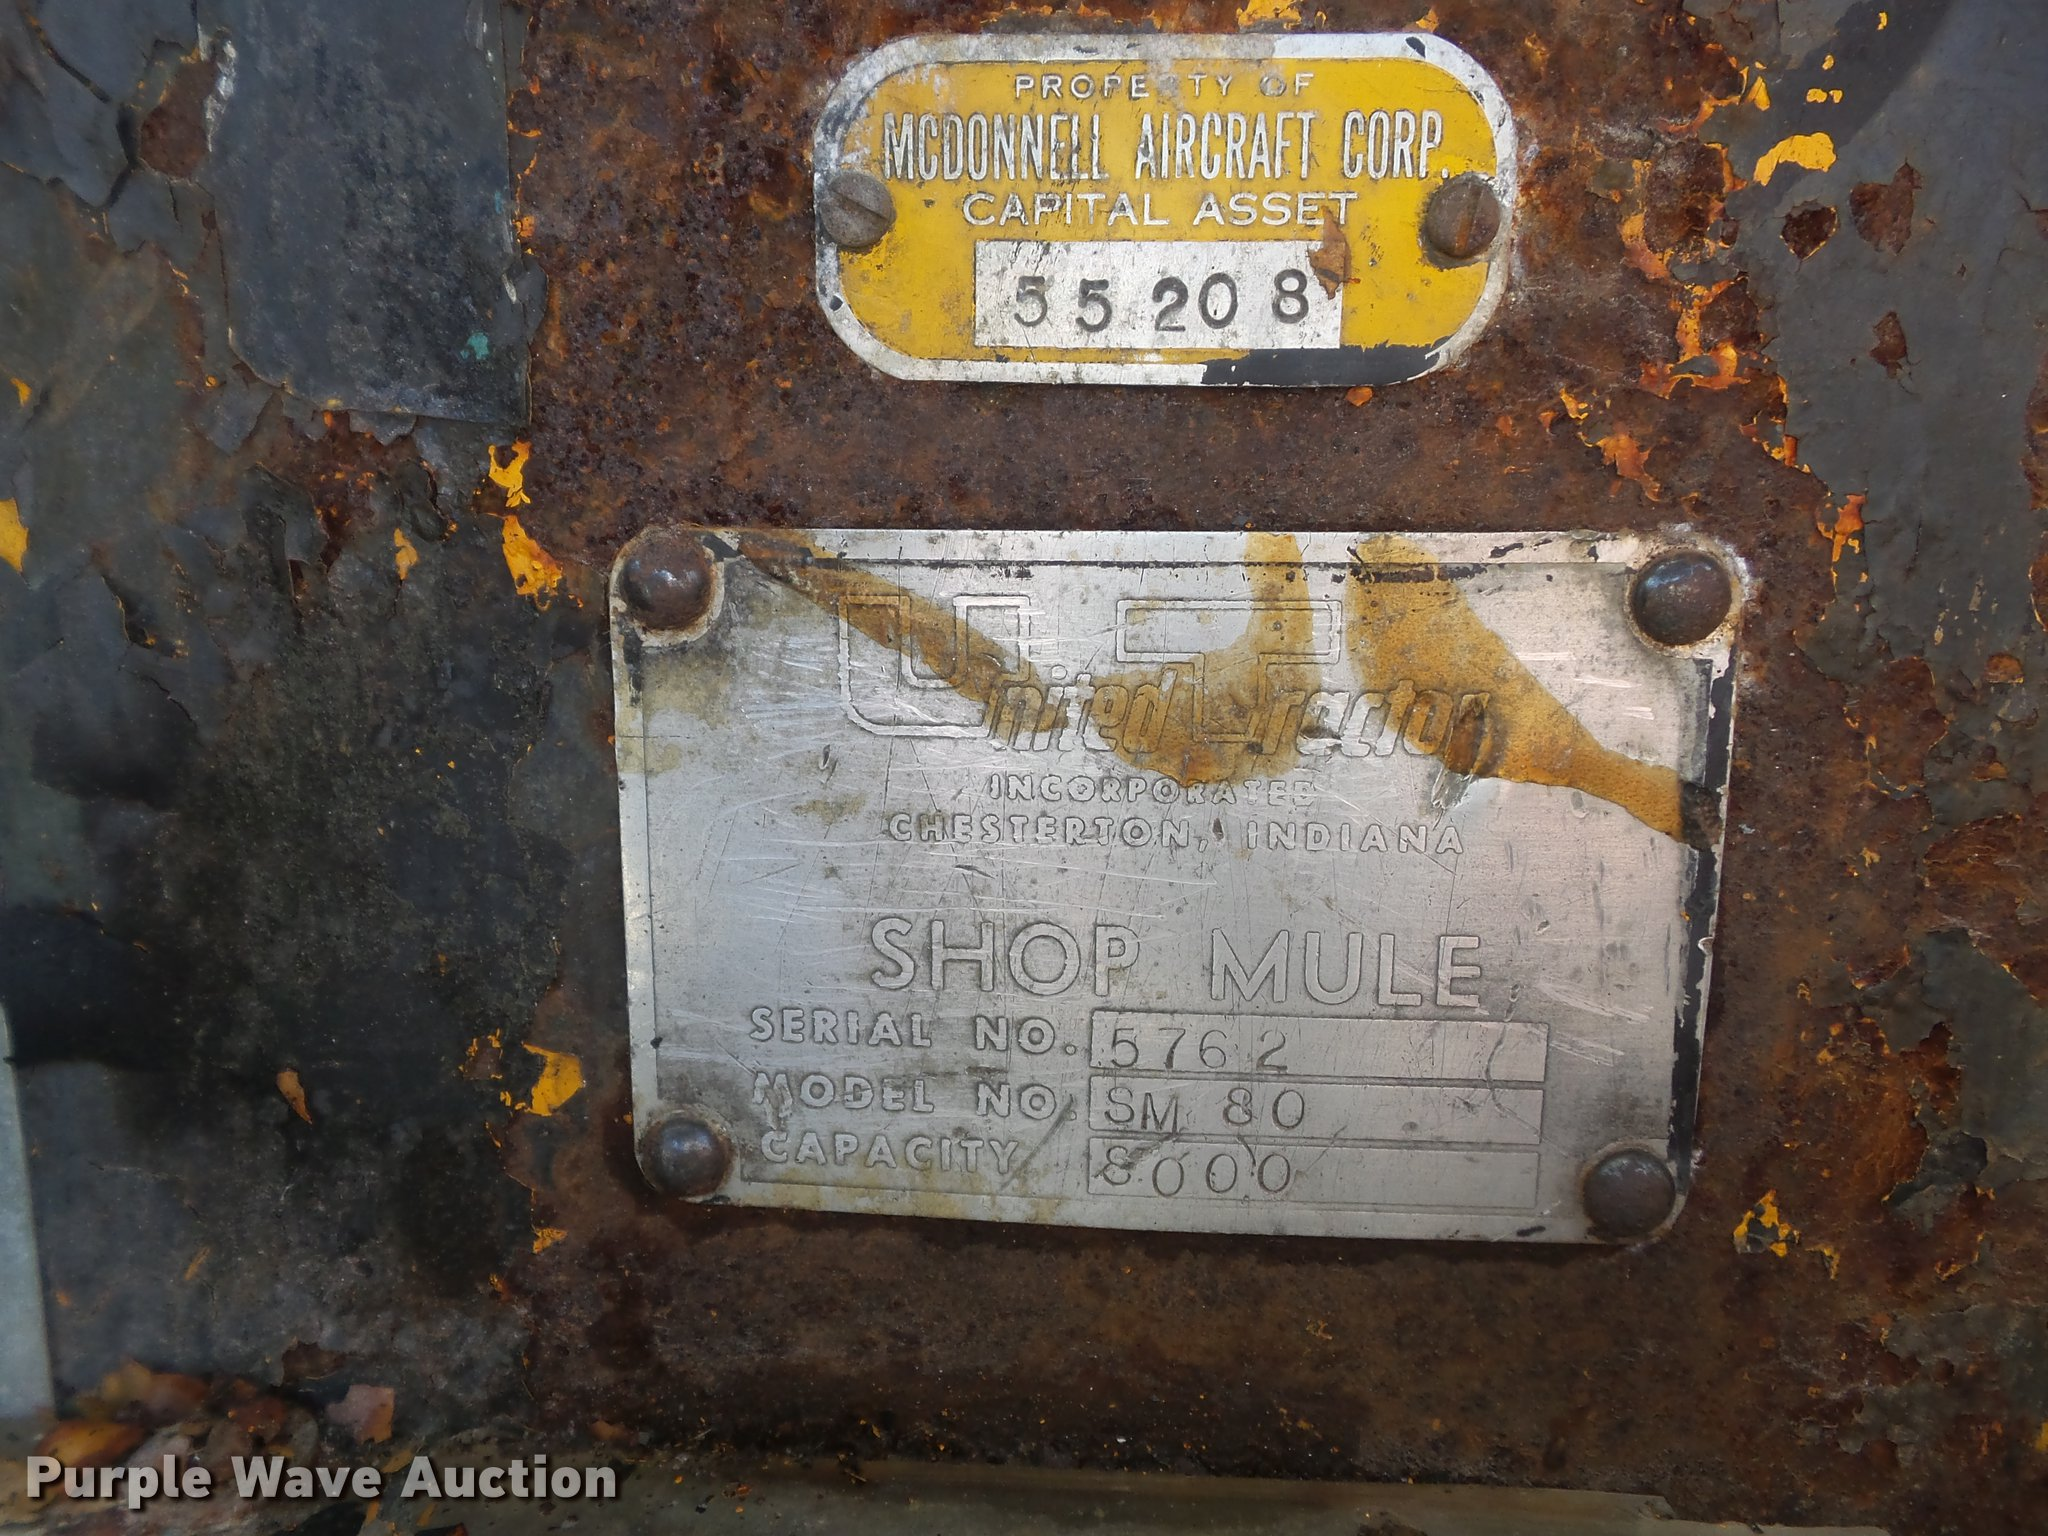 United Tractor SM80 Shop Mule aircraft tug   Item DC7314   S